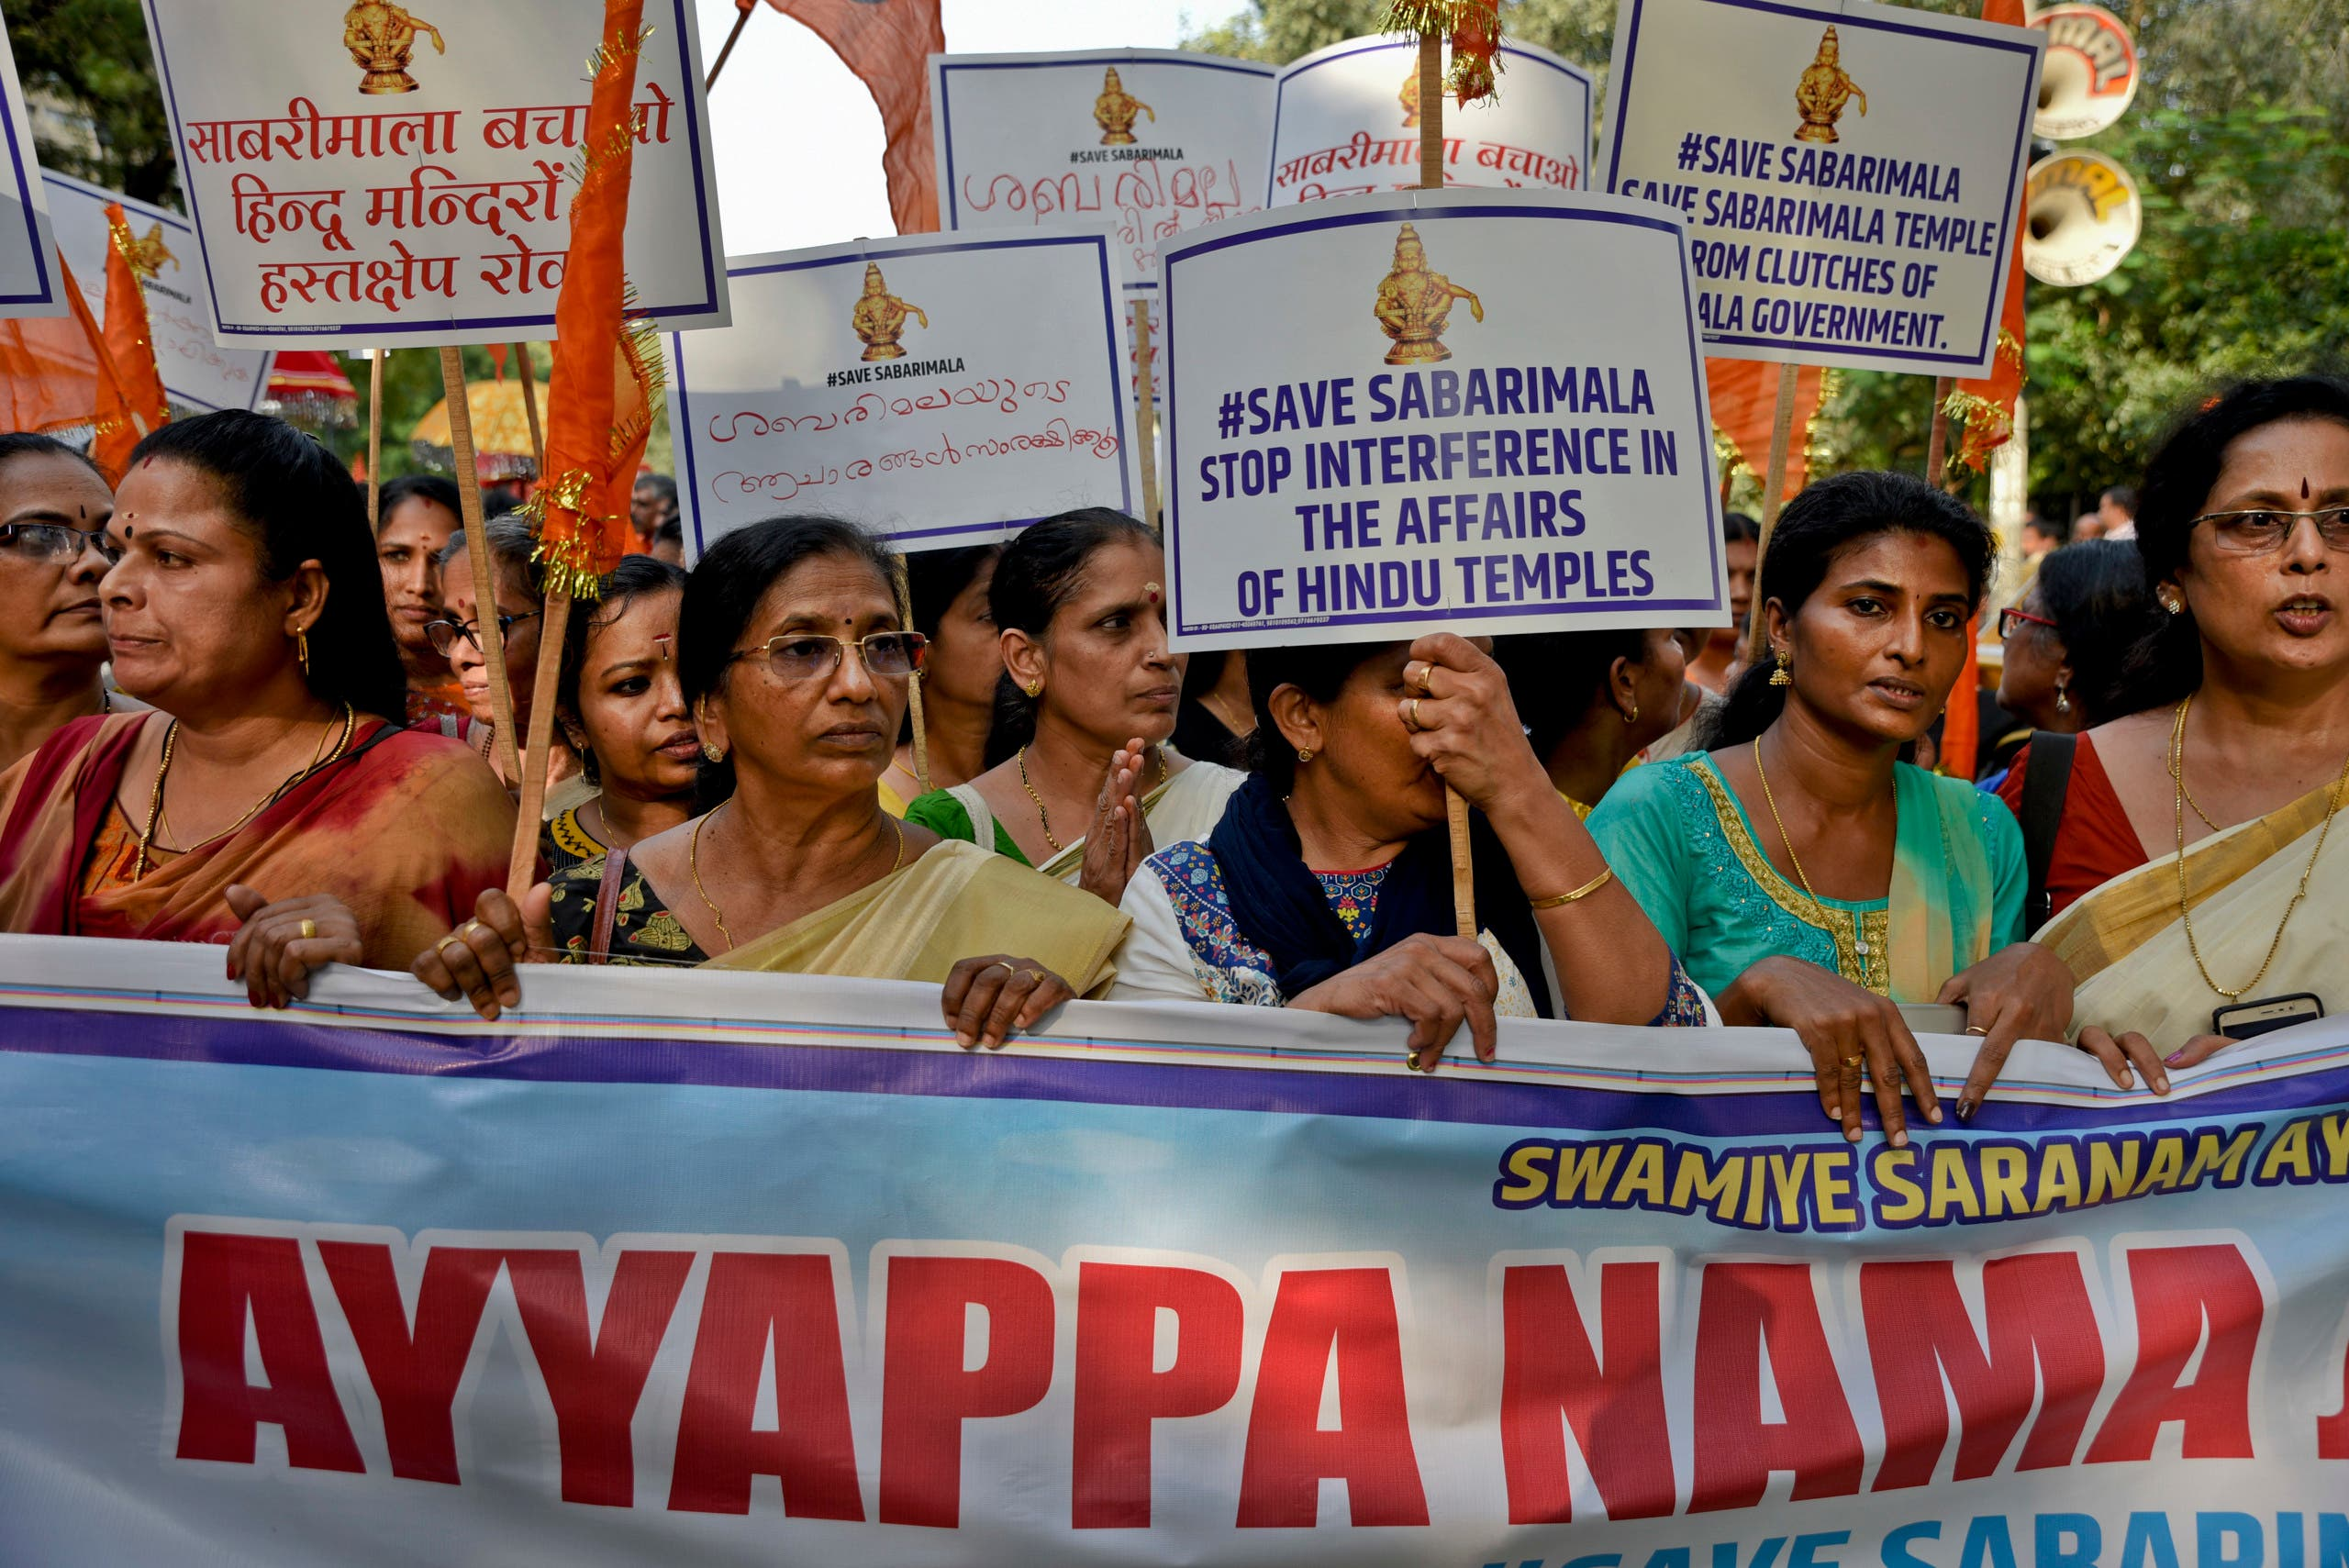 Indian Hindu women hold placards and chant religious hymns worshipping Lord Ayyappa, the deity of Sabarimala temple, as they arrive for a protest against a recent Supreme Court verdict in New Delhi, India. (AP)